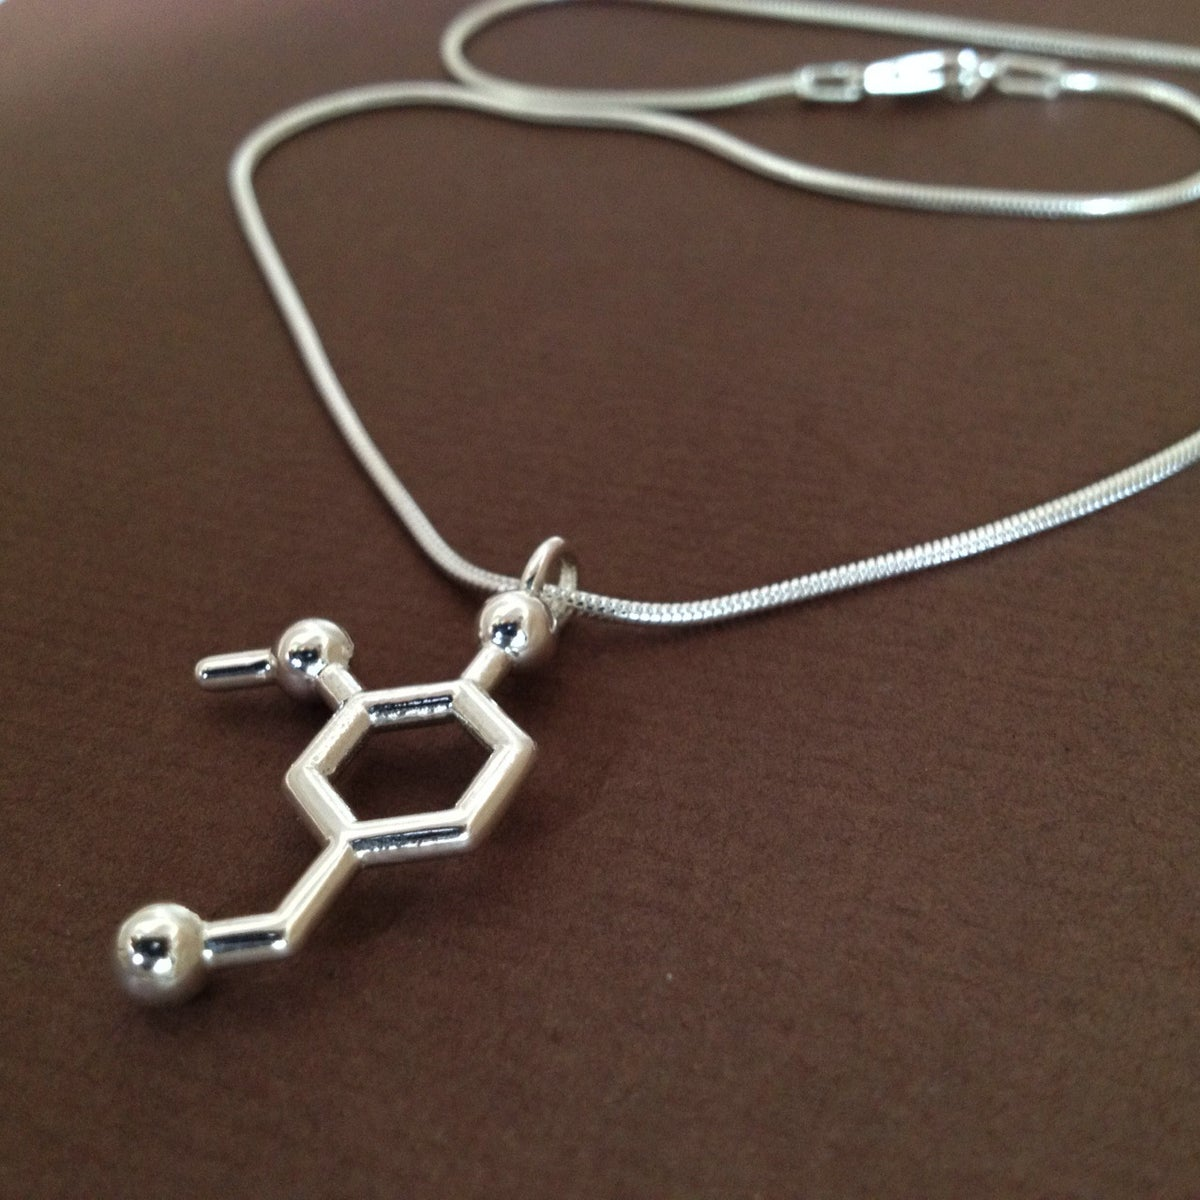 Image of vanillin necklace